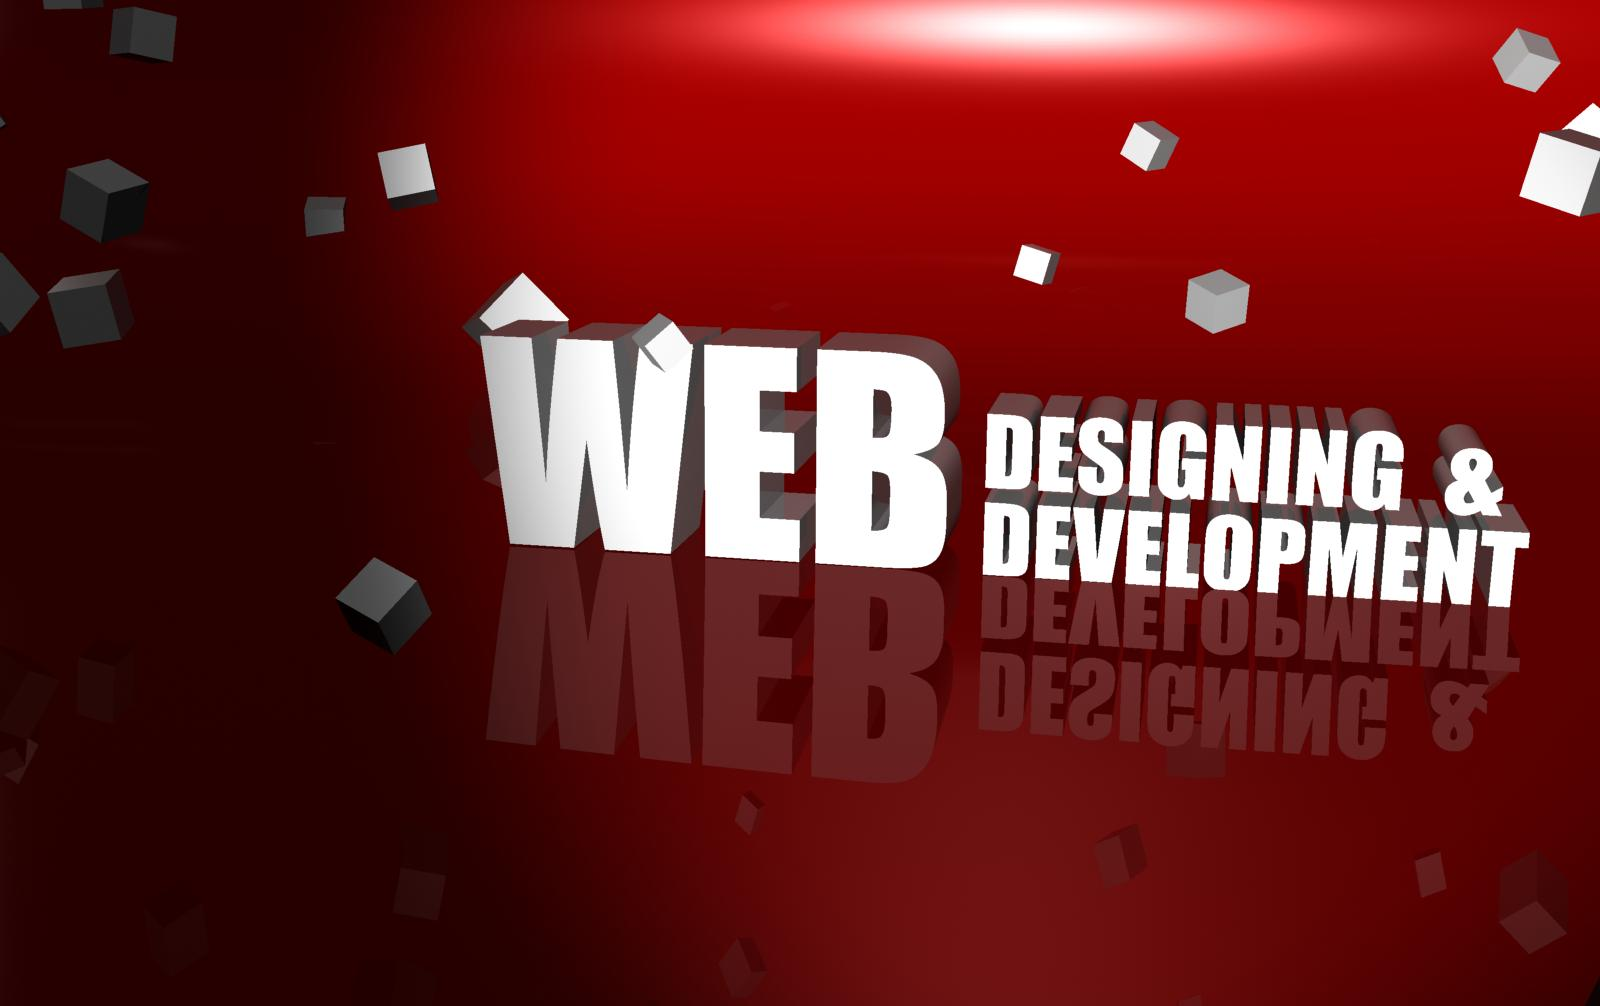 web_design_development-1-copy